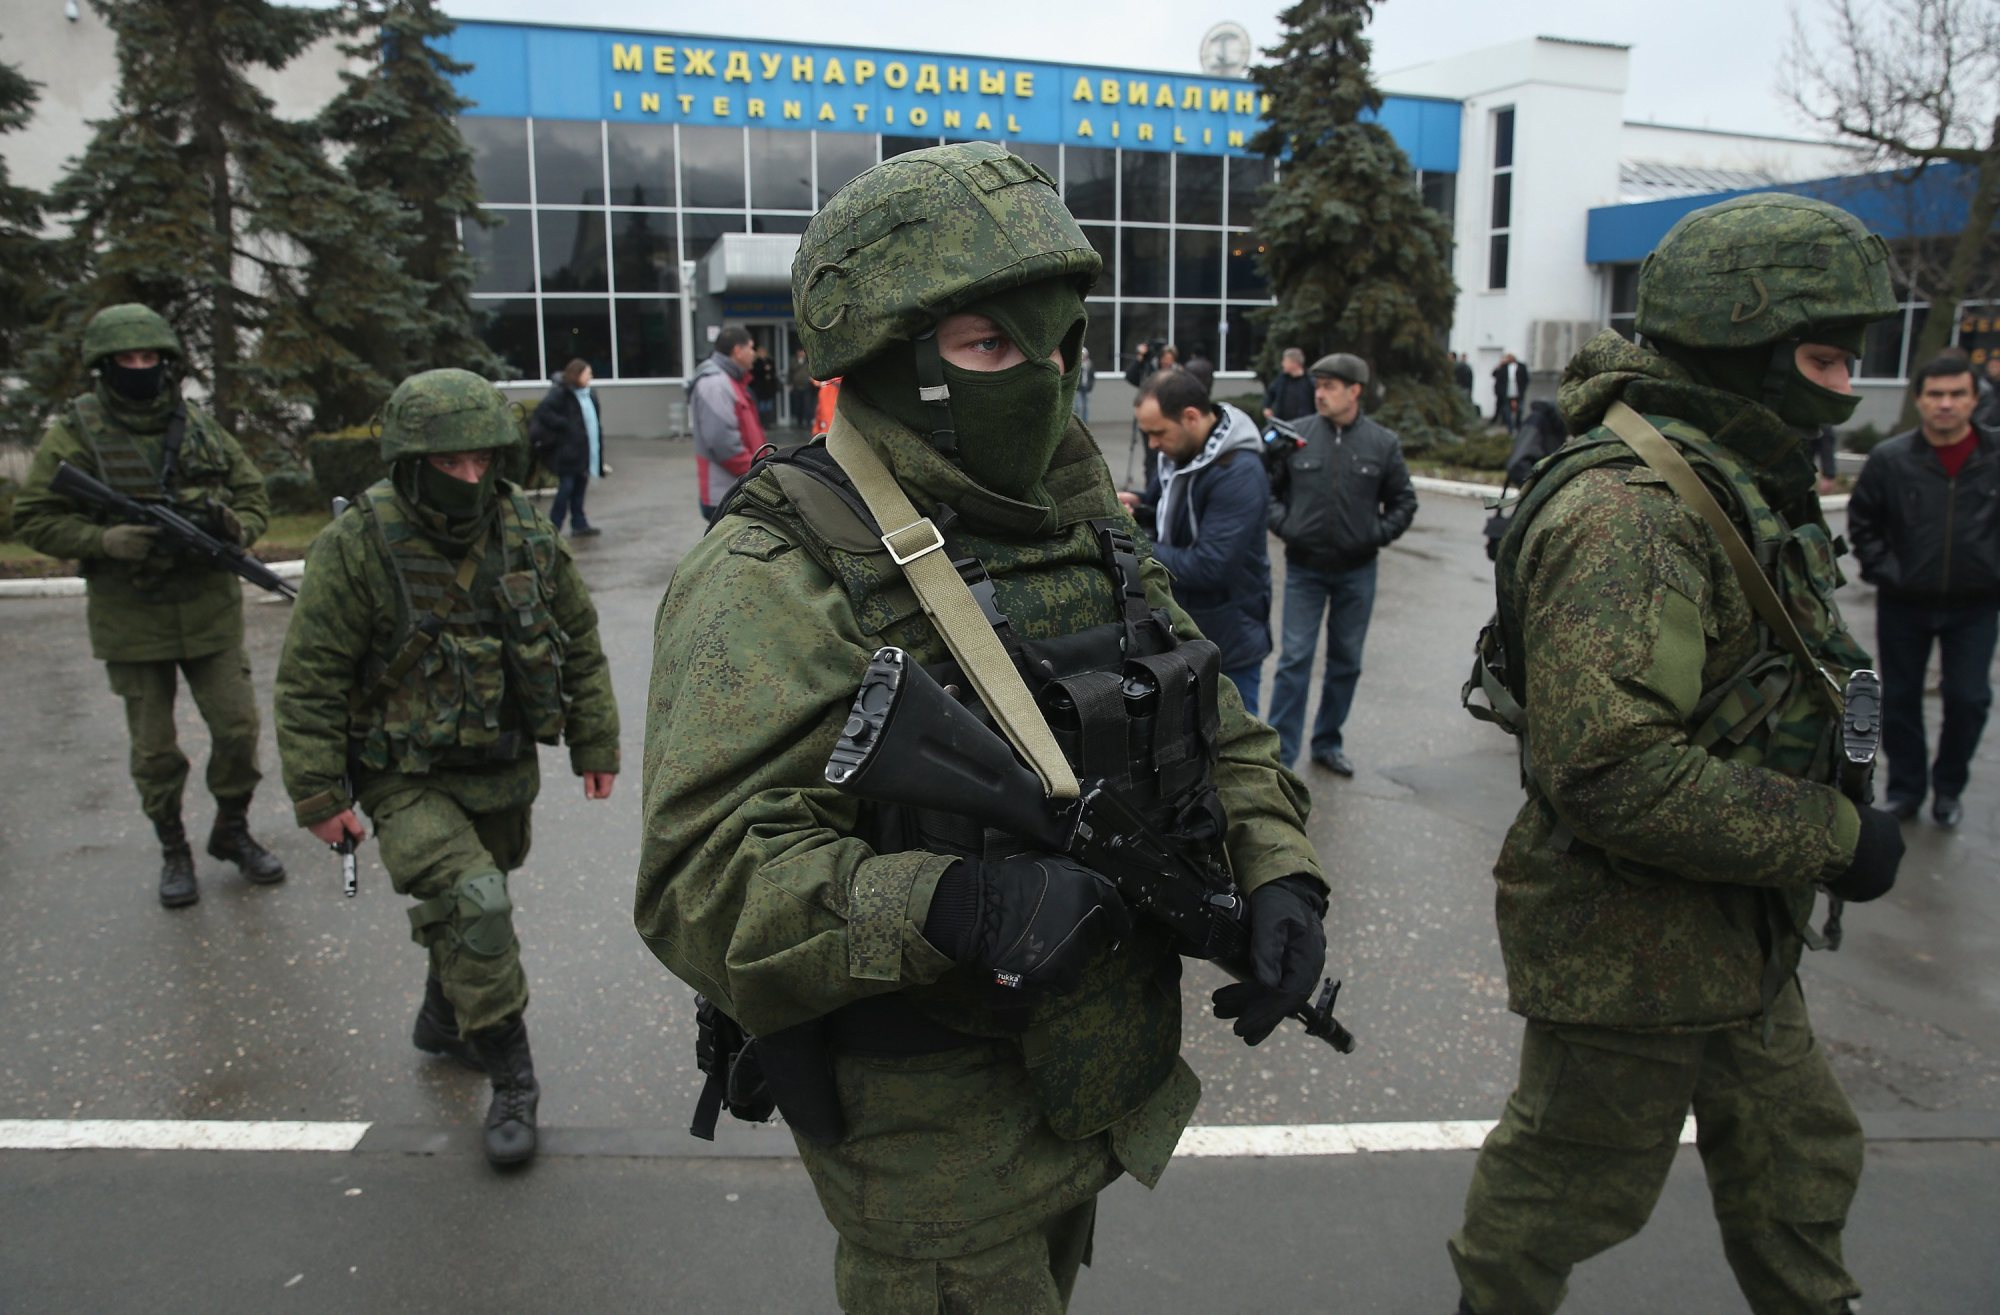 Soldiers, who were wearing no identifying insignia and declined to say whether they were Russian or Ukrainian, patrol outside the Simferopol International Airport after a pro-Russian crowd had gathered on Feb. 28, 2014.